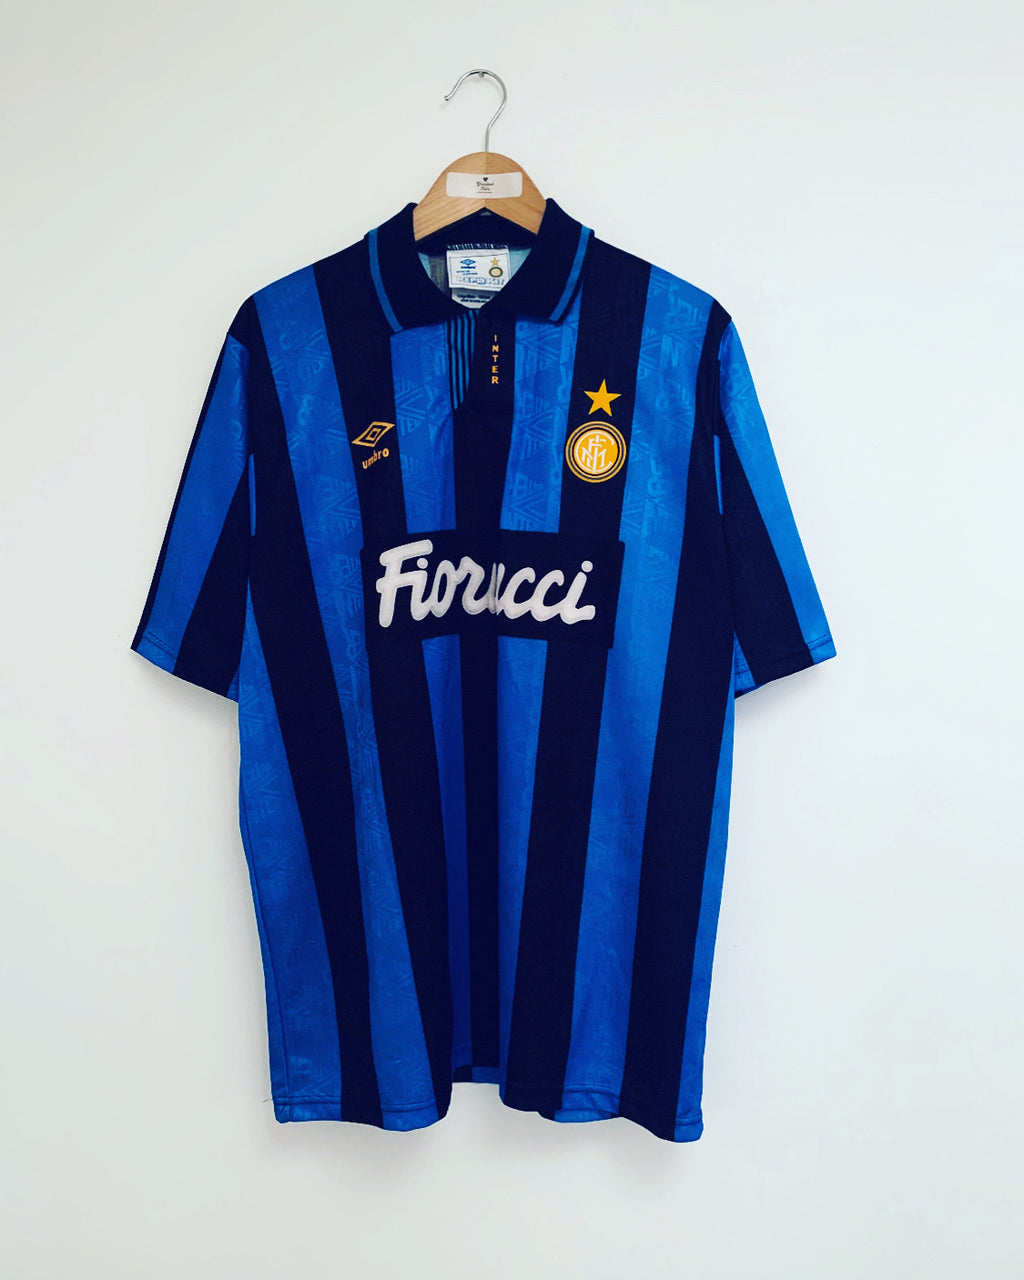 1992/94 Inter Milan Home Shirt (L) 9.5/10